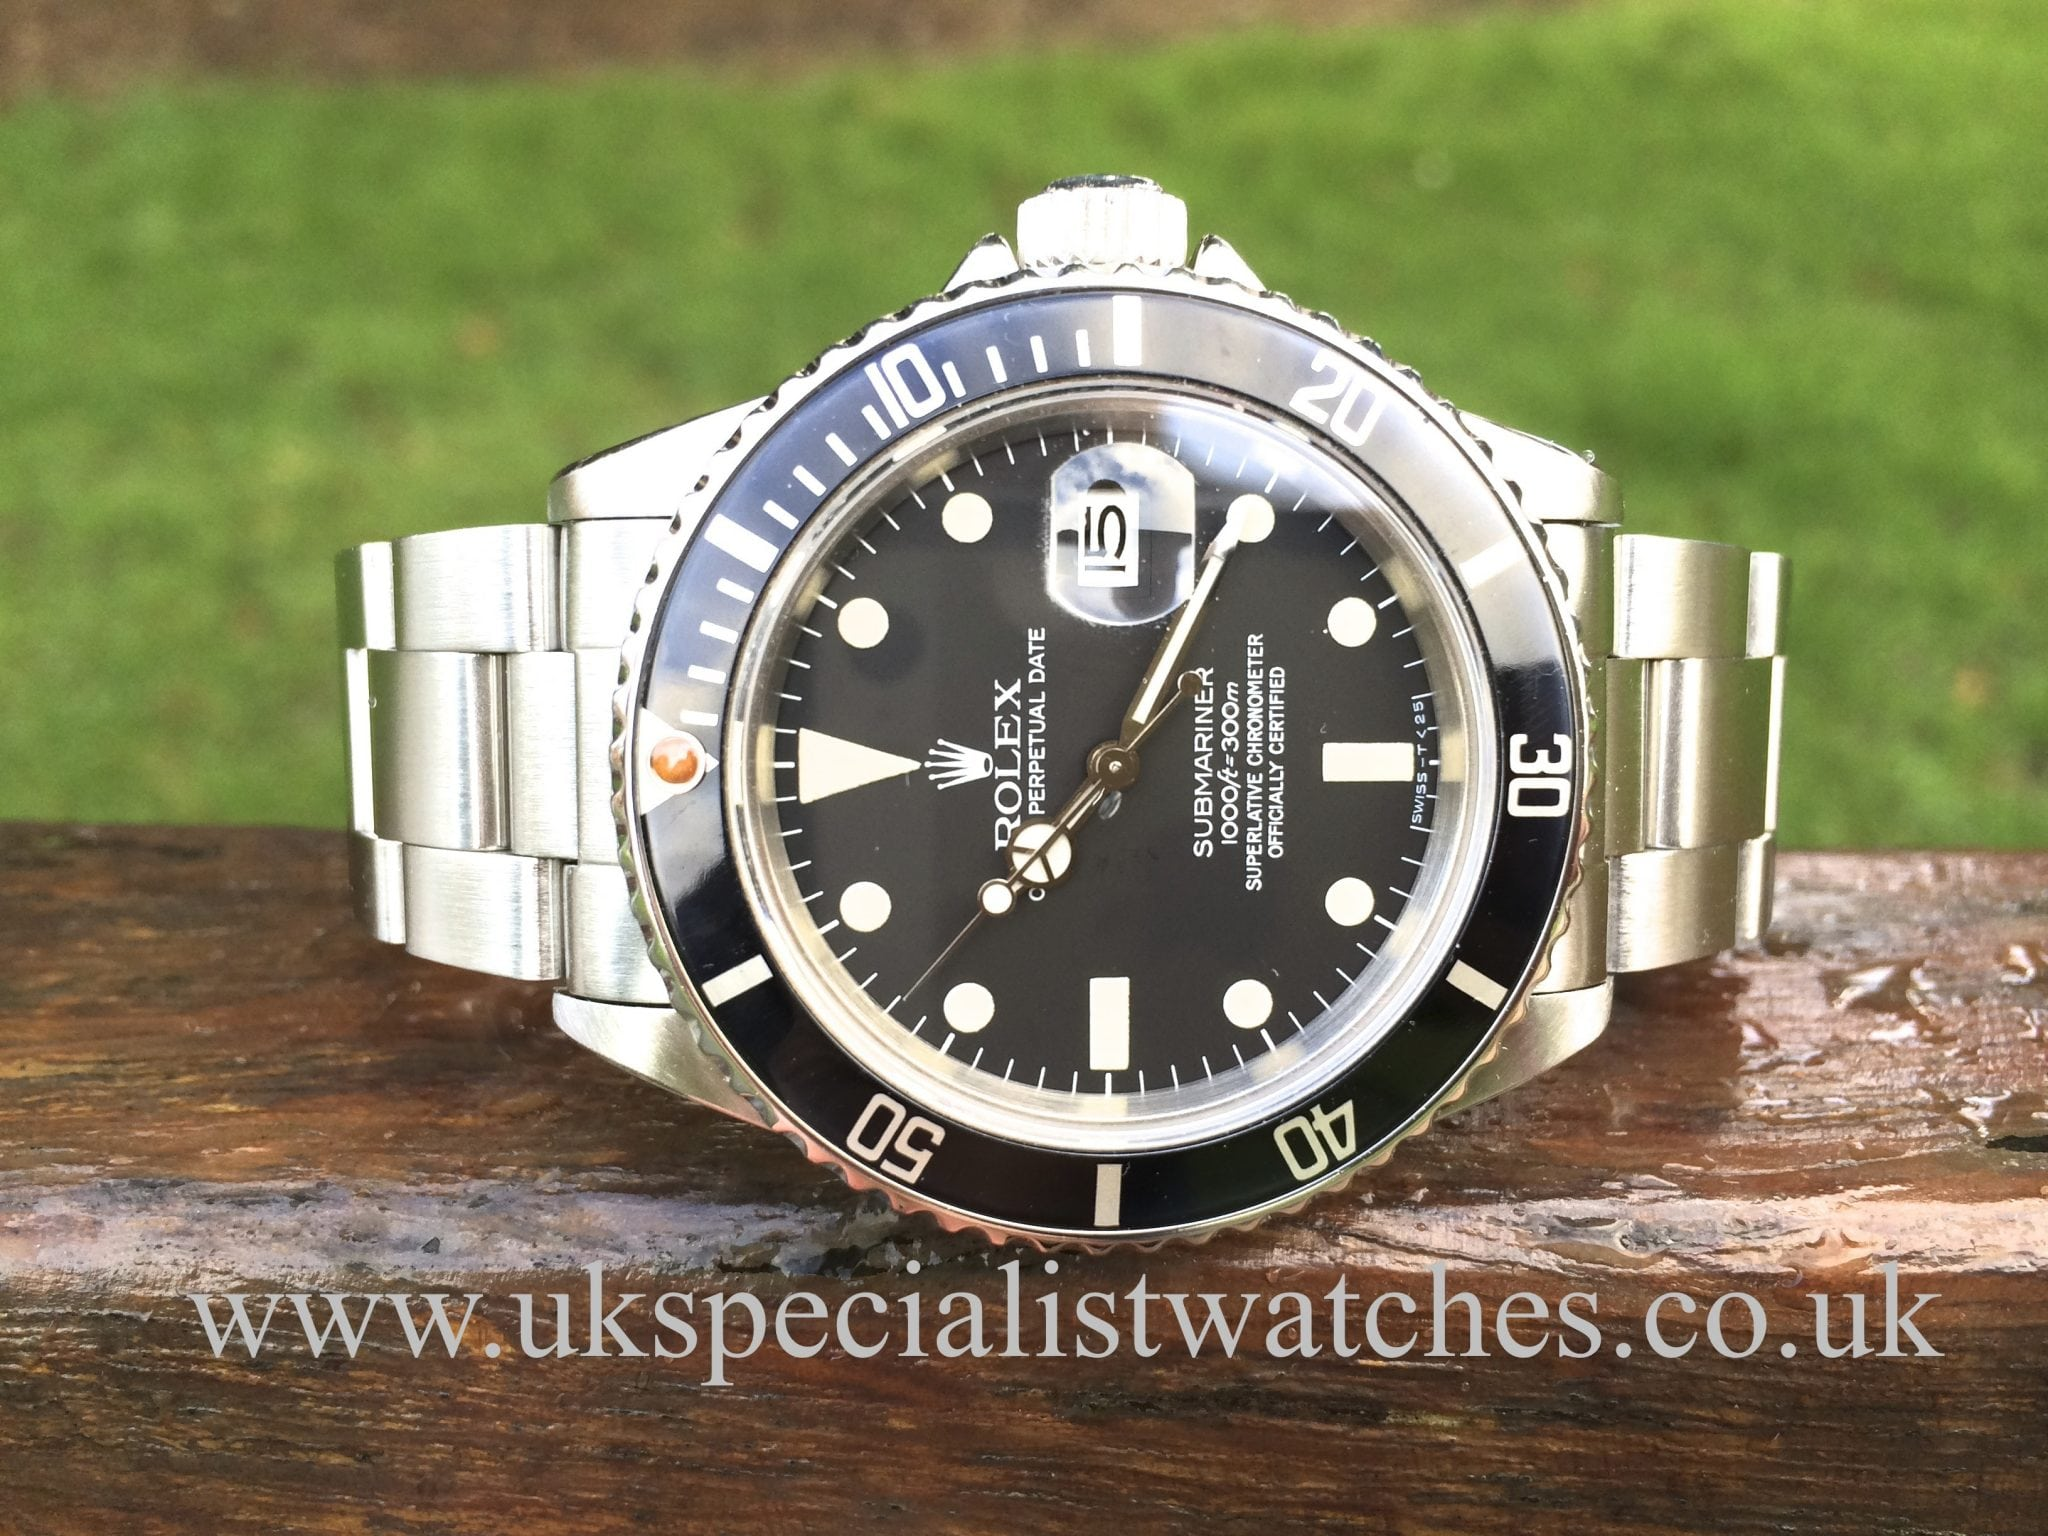 Rolex Submariner Date 16800 Transitional Dial